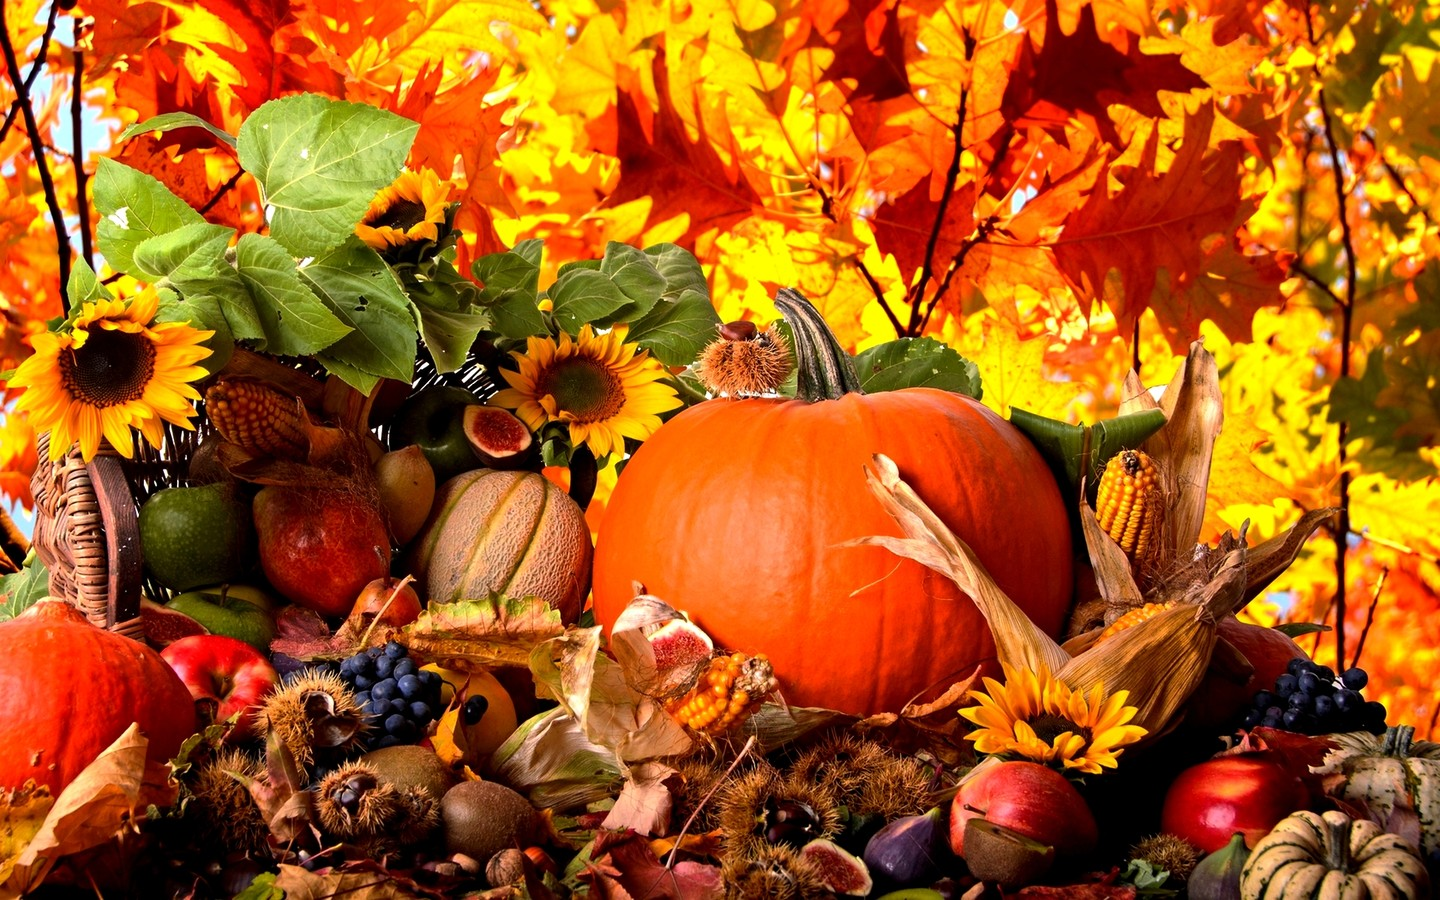 Fruits-and-vegetables-from-Autumn-season-HD-wallpaper_1440x900